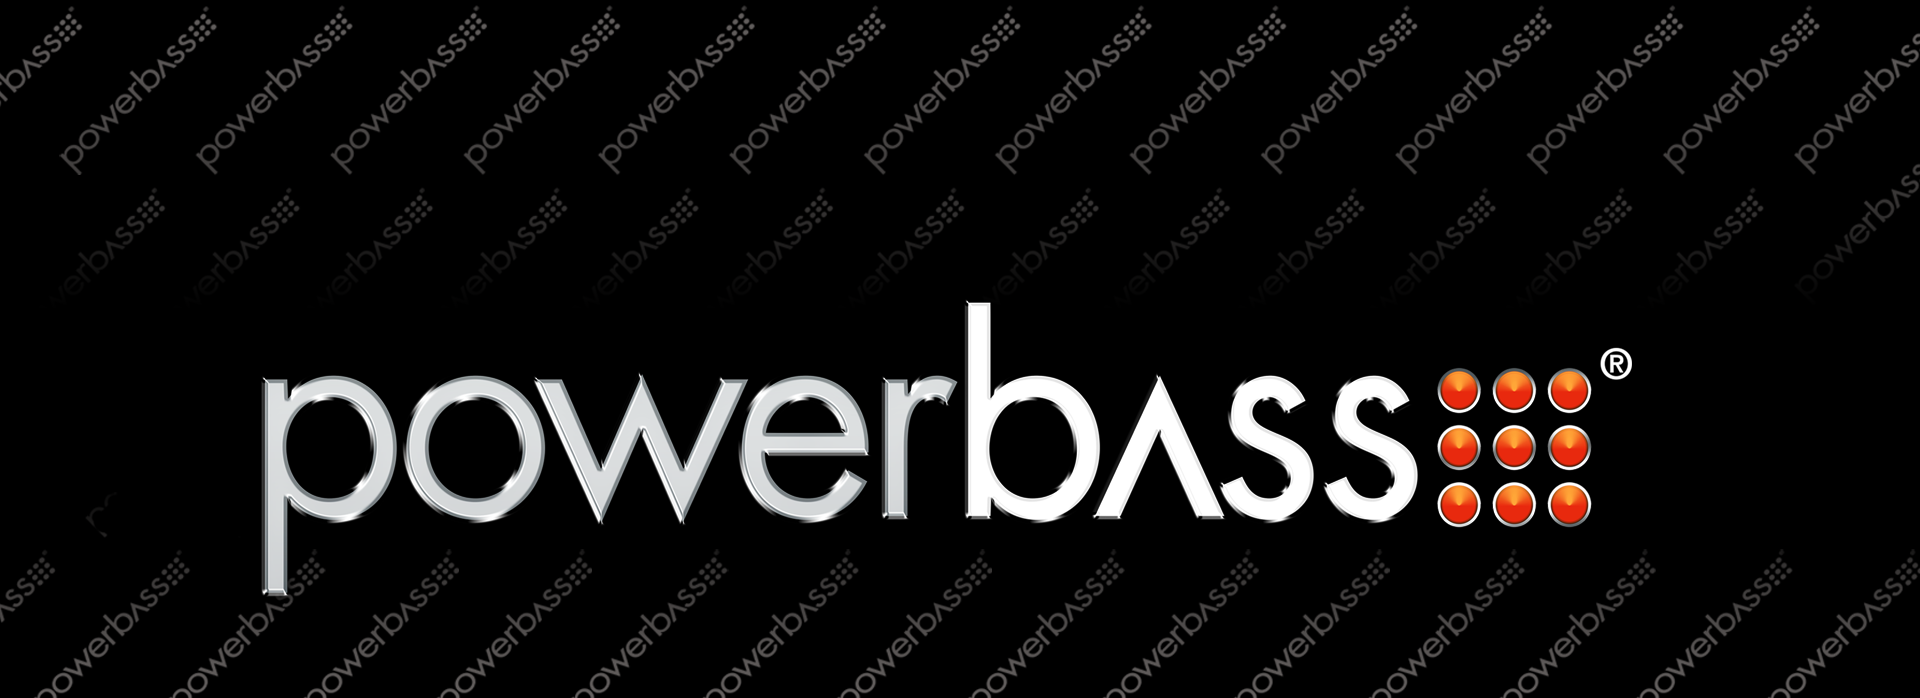 Powerbass mobile and powersports audio hero image